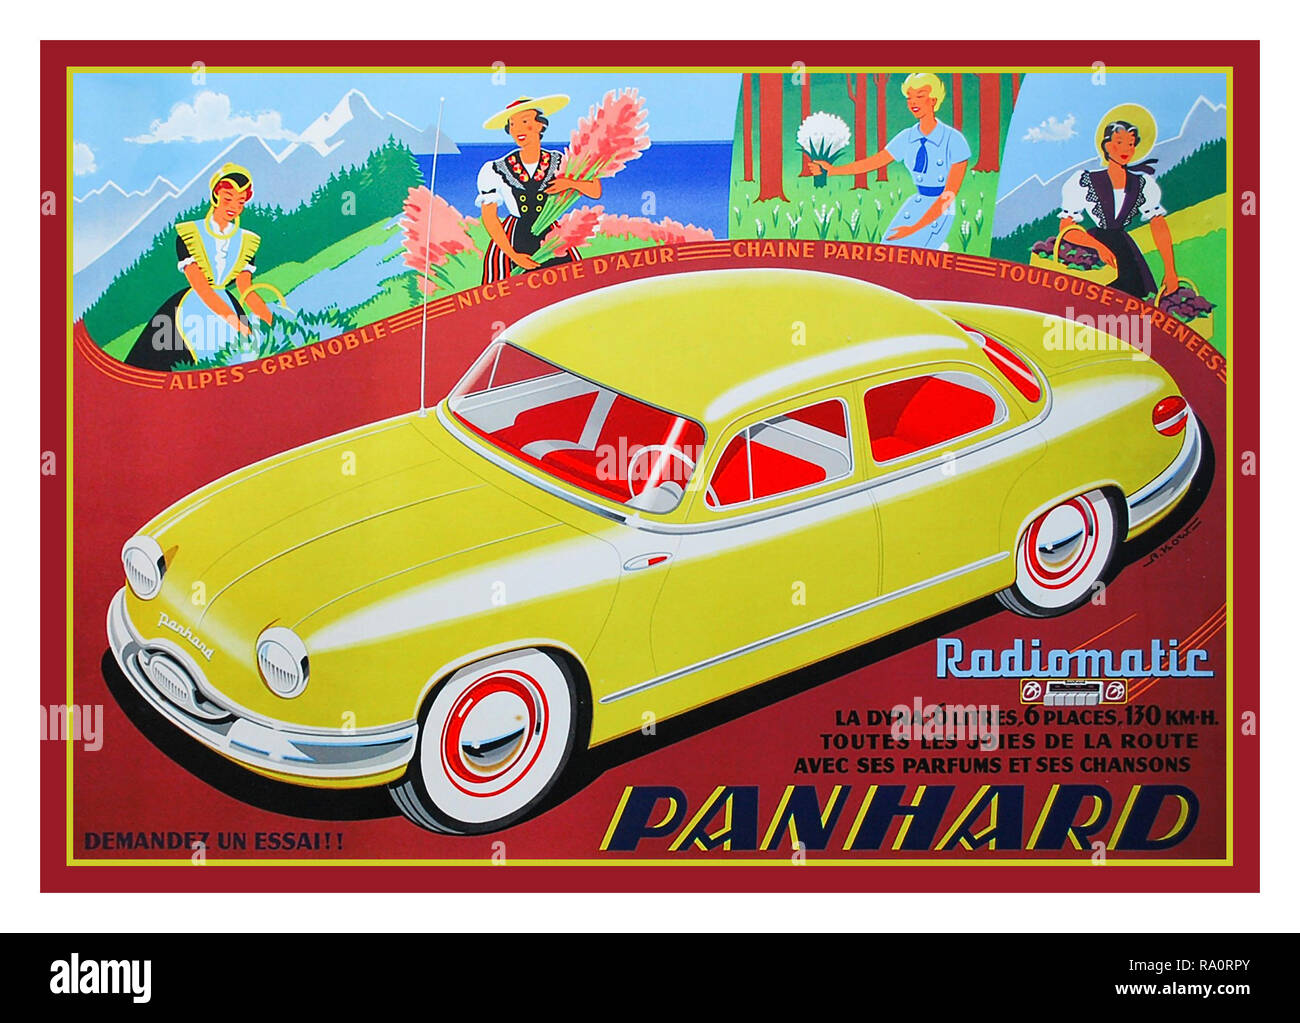 Vintage 1950's Panhard Dyna French Motorcar with latest  'Radiomatic' tuneable radio installed 1954/1955 French Sedan Lifestyle Advertising Car Poster by Artist Alexis Kow Colour Lithograph printed by SA Courbet Paris France - Stock Image